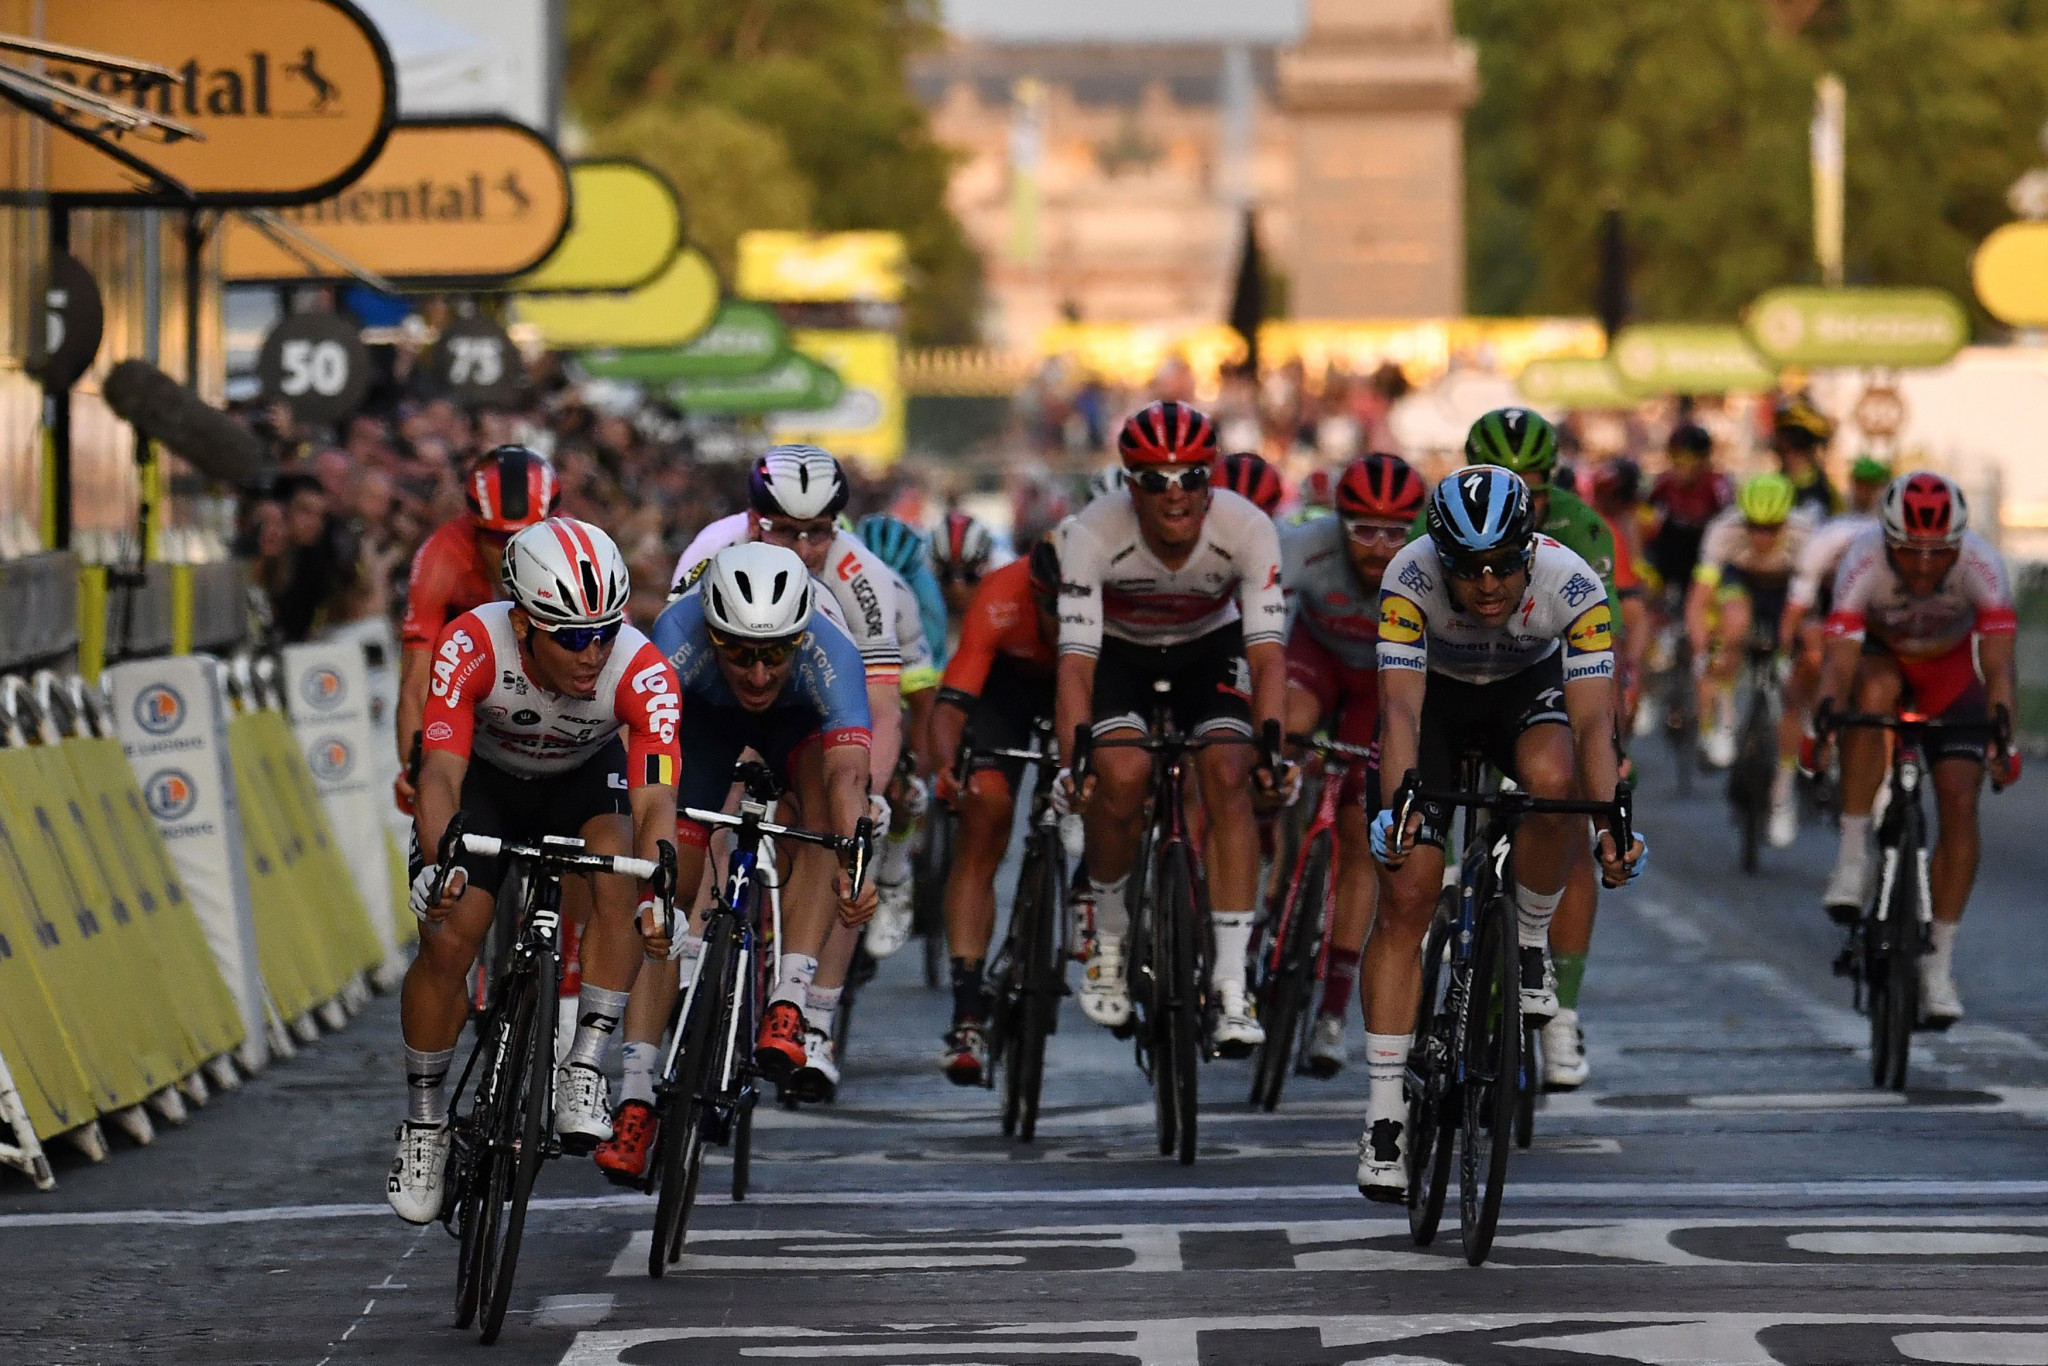 Postponement of the Tour de France is reportedly being considered ©Getty Images